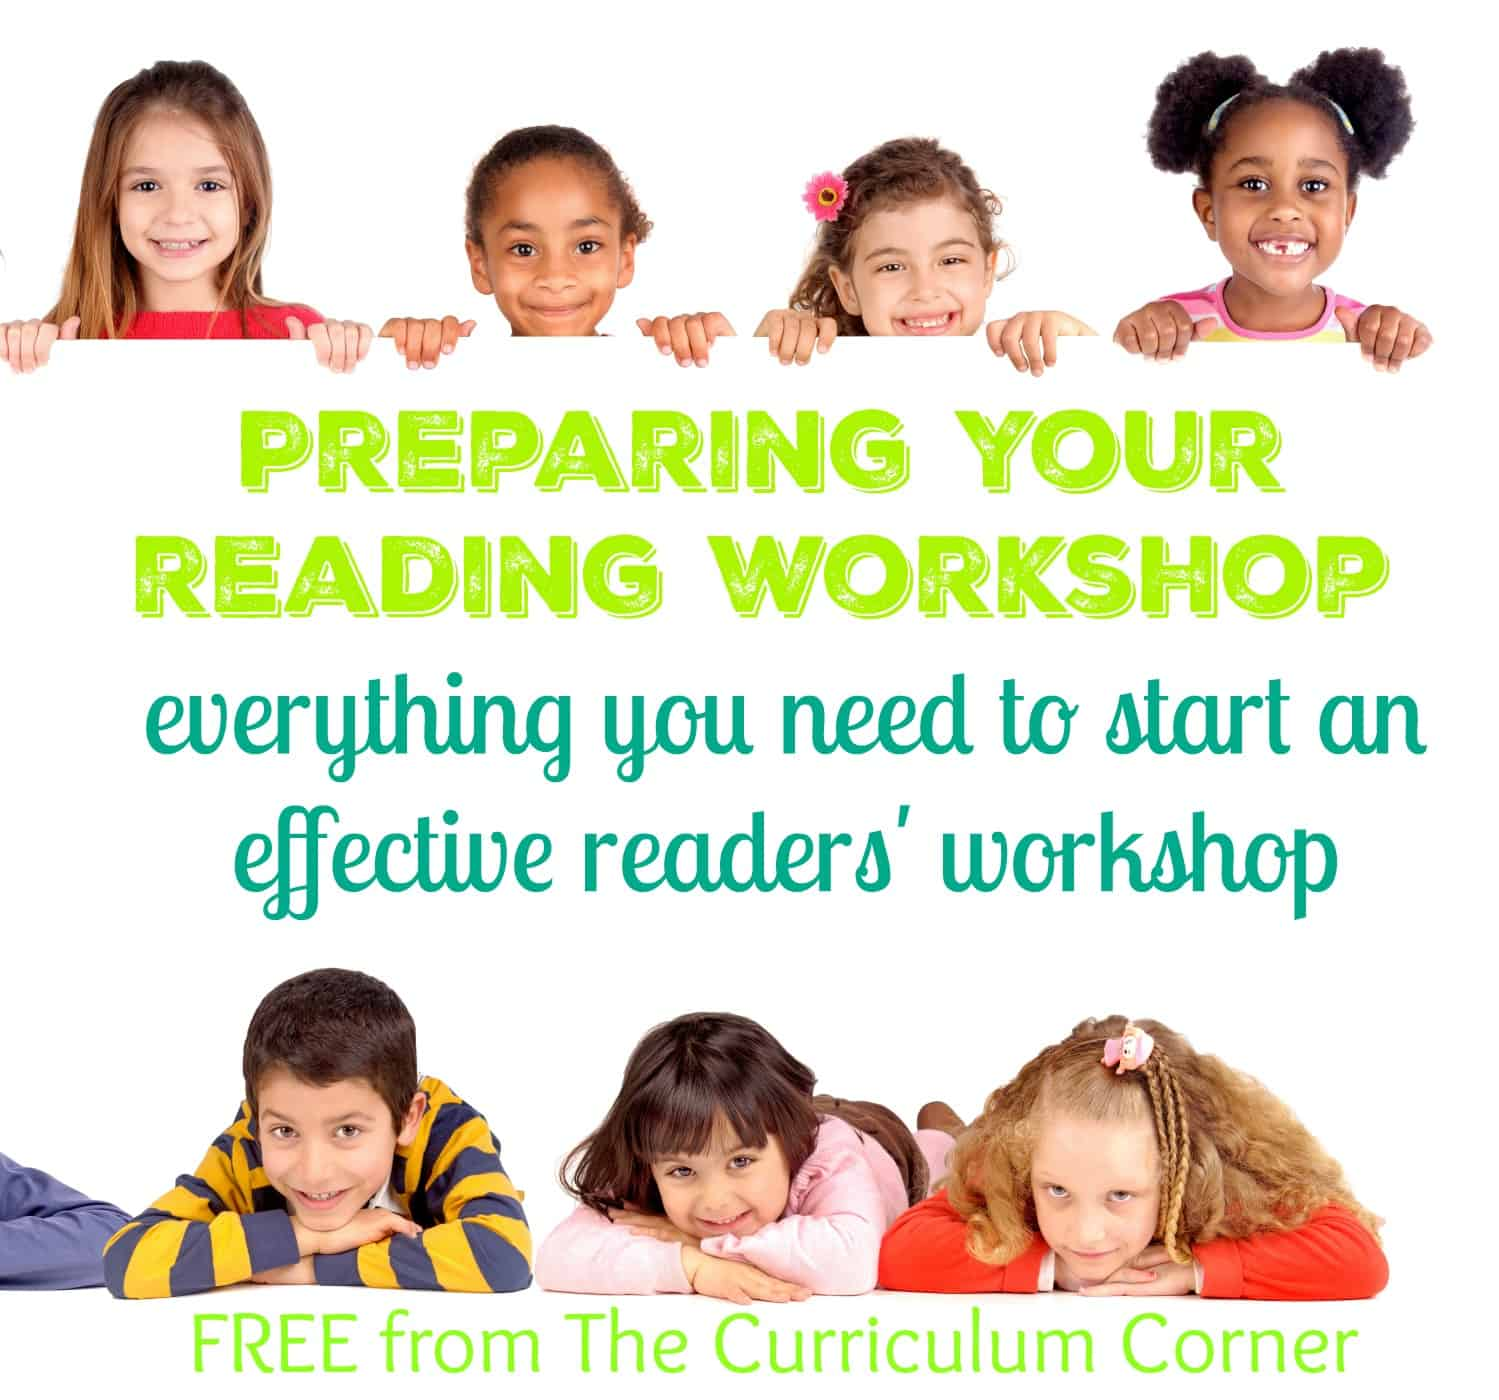 Preparing Your Reading Workshop